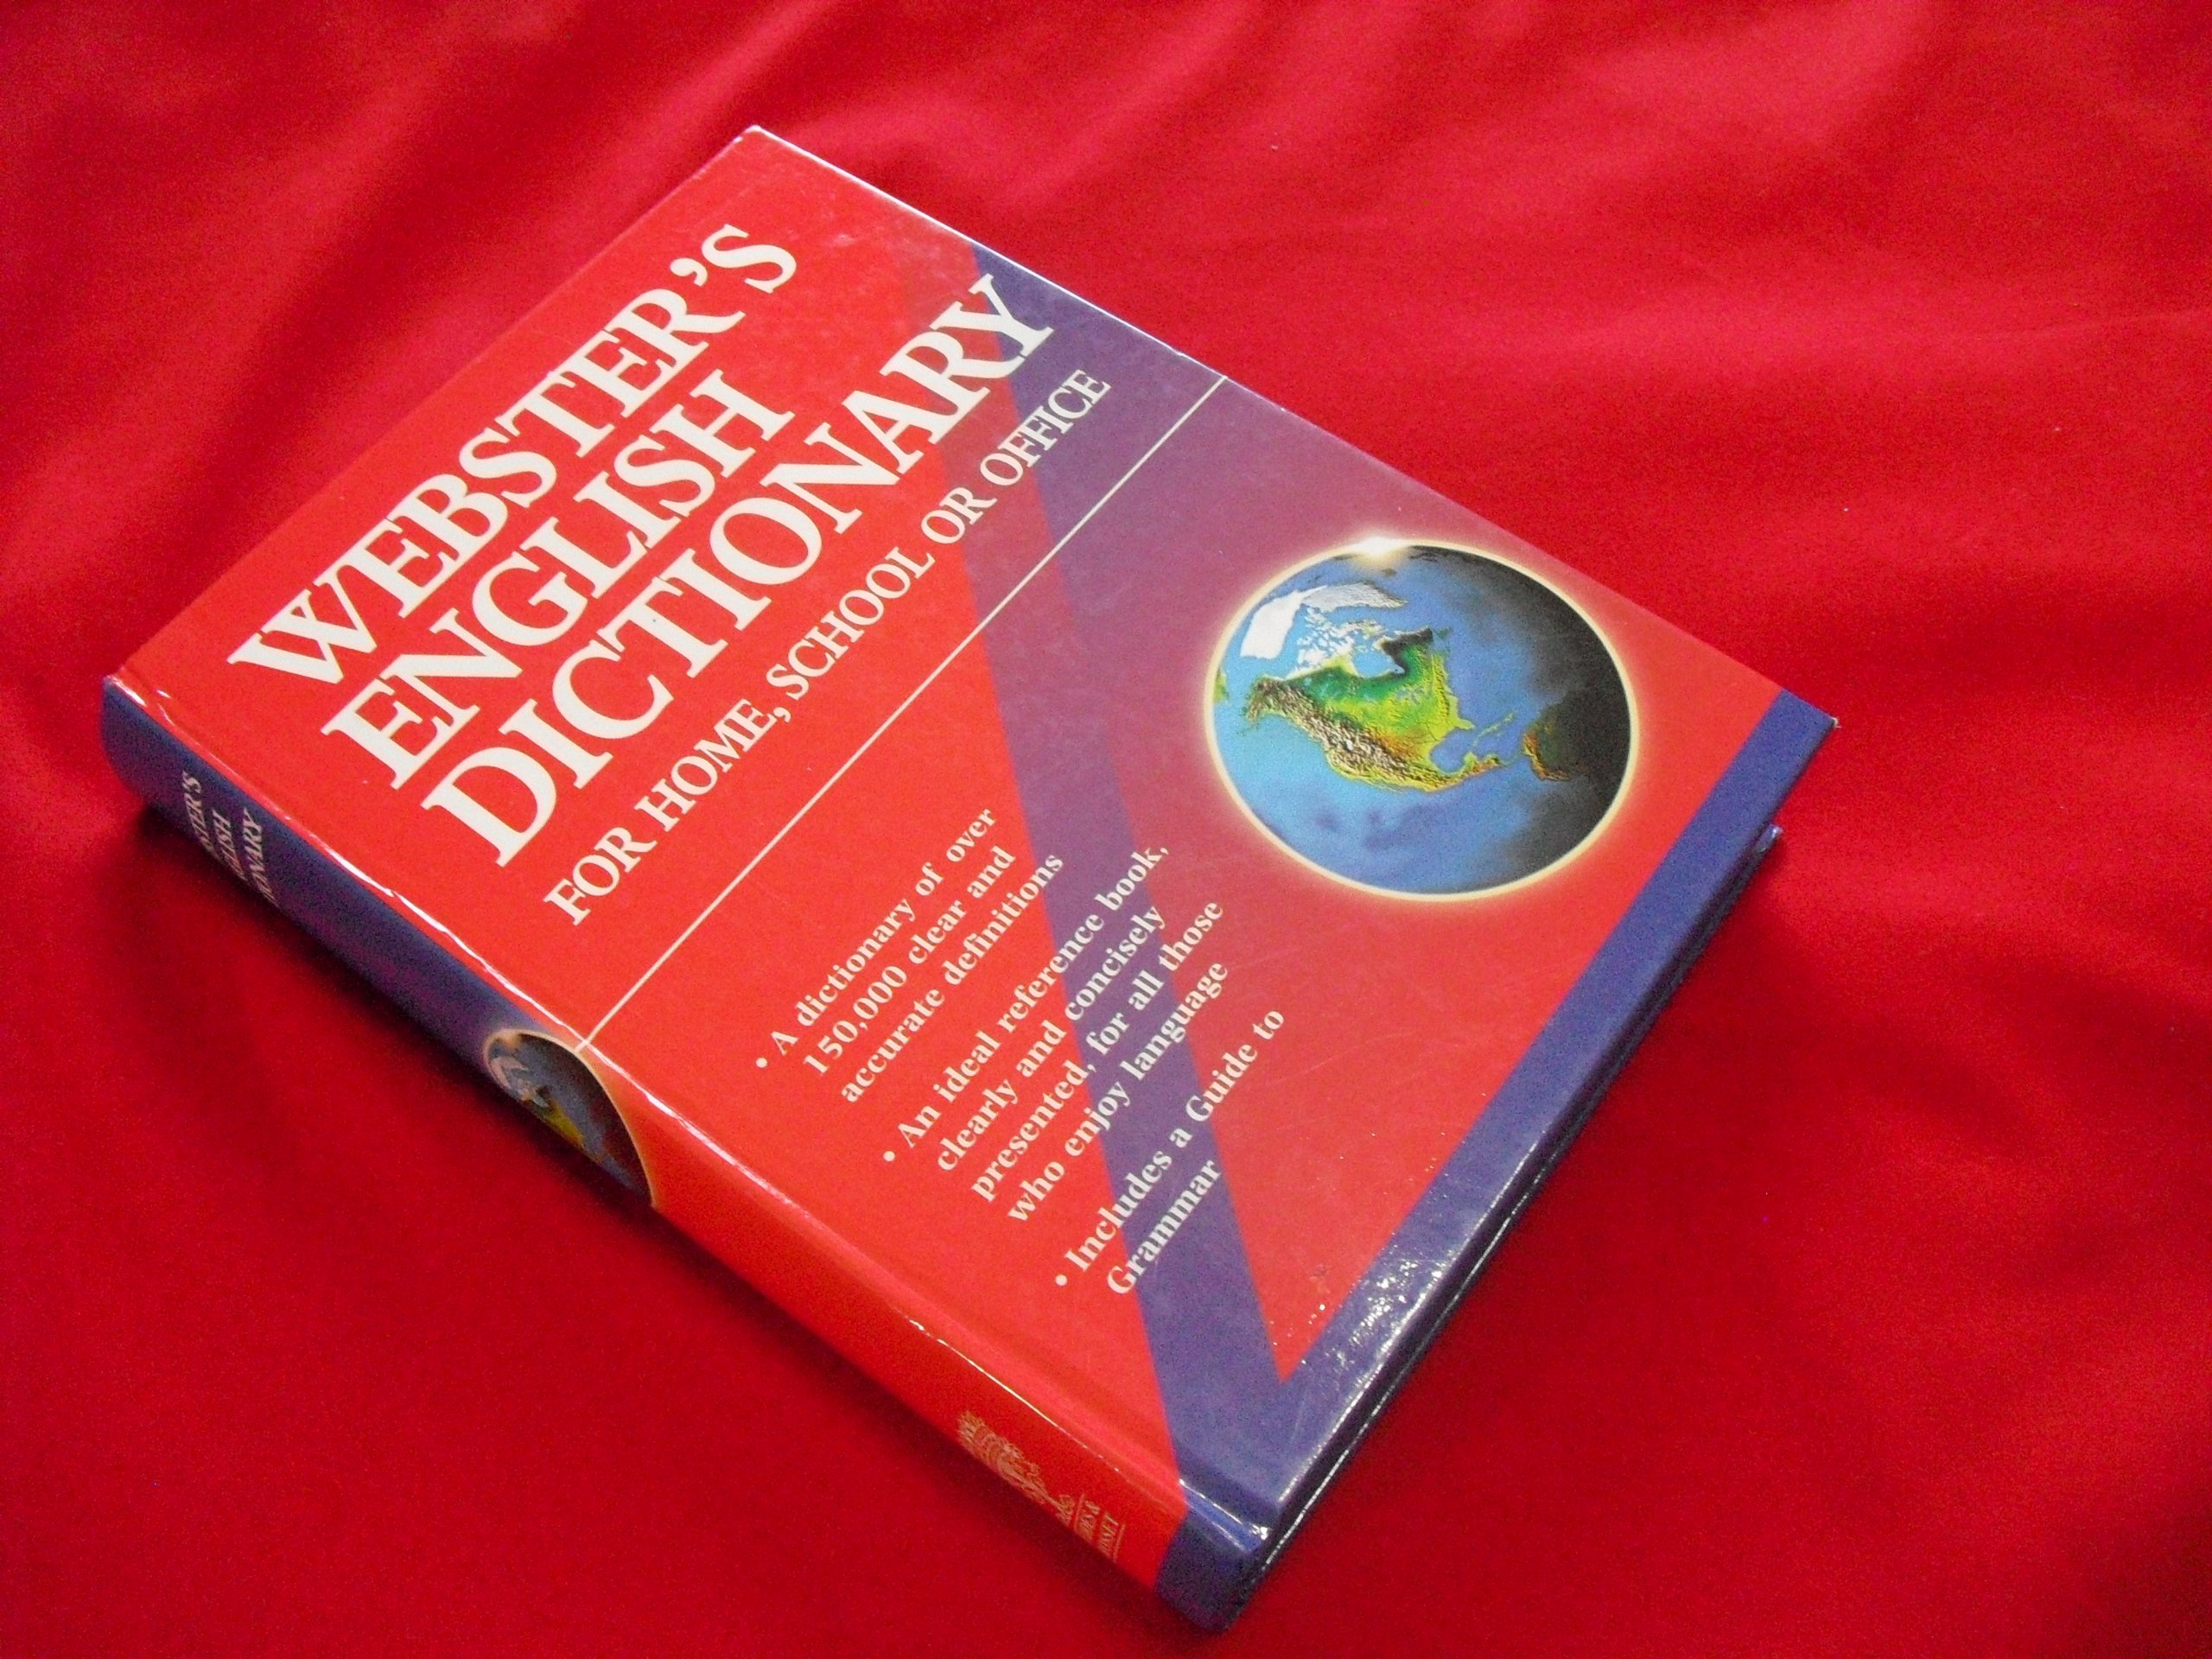 Webter's English Dictionary (For Home, School or Office) pdf